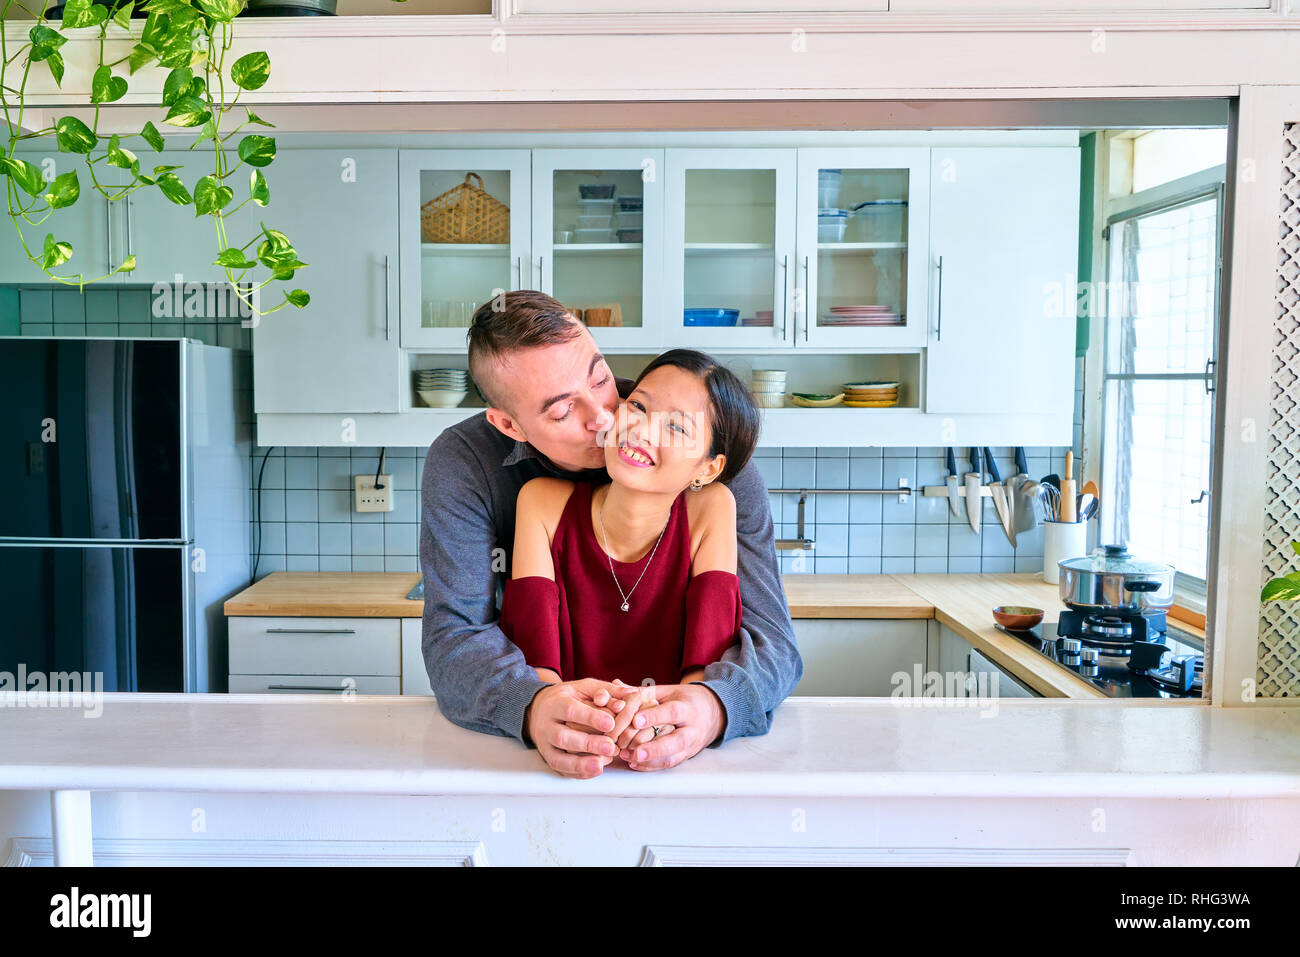 Lovely couple posing - holding hands and kissing cheek - Stock Image